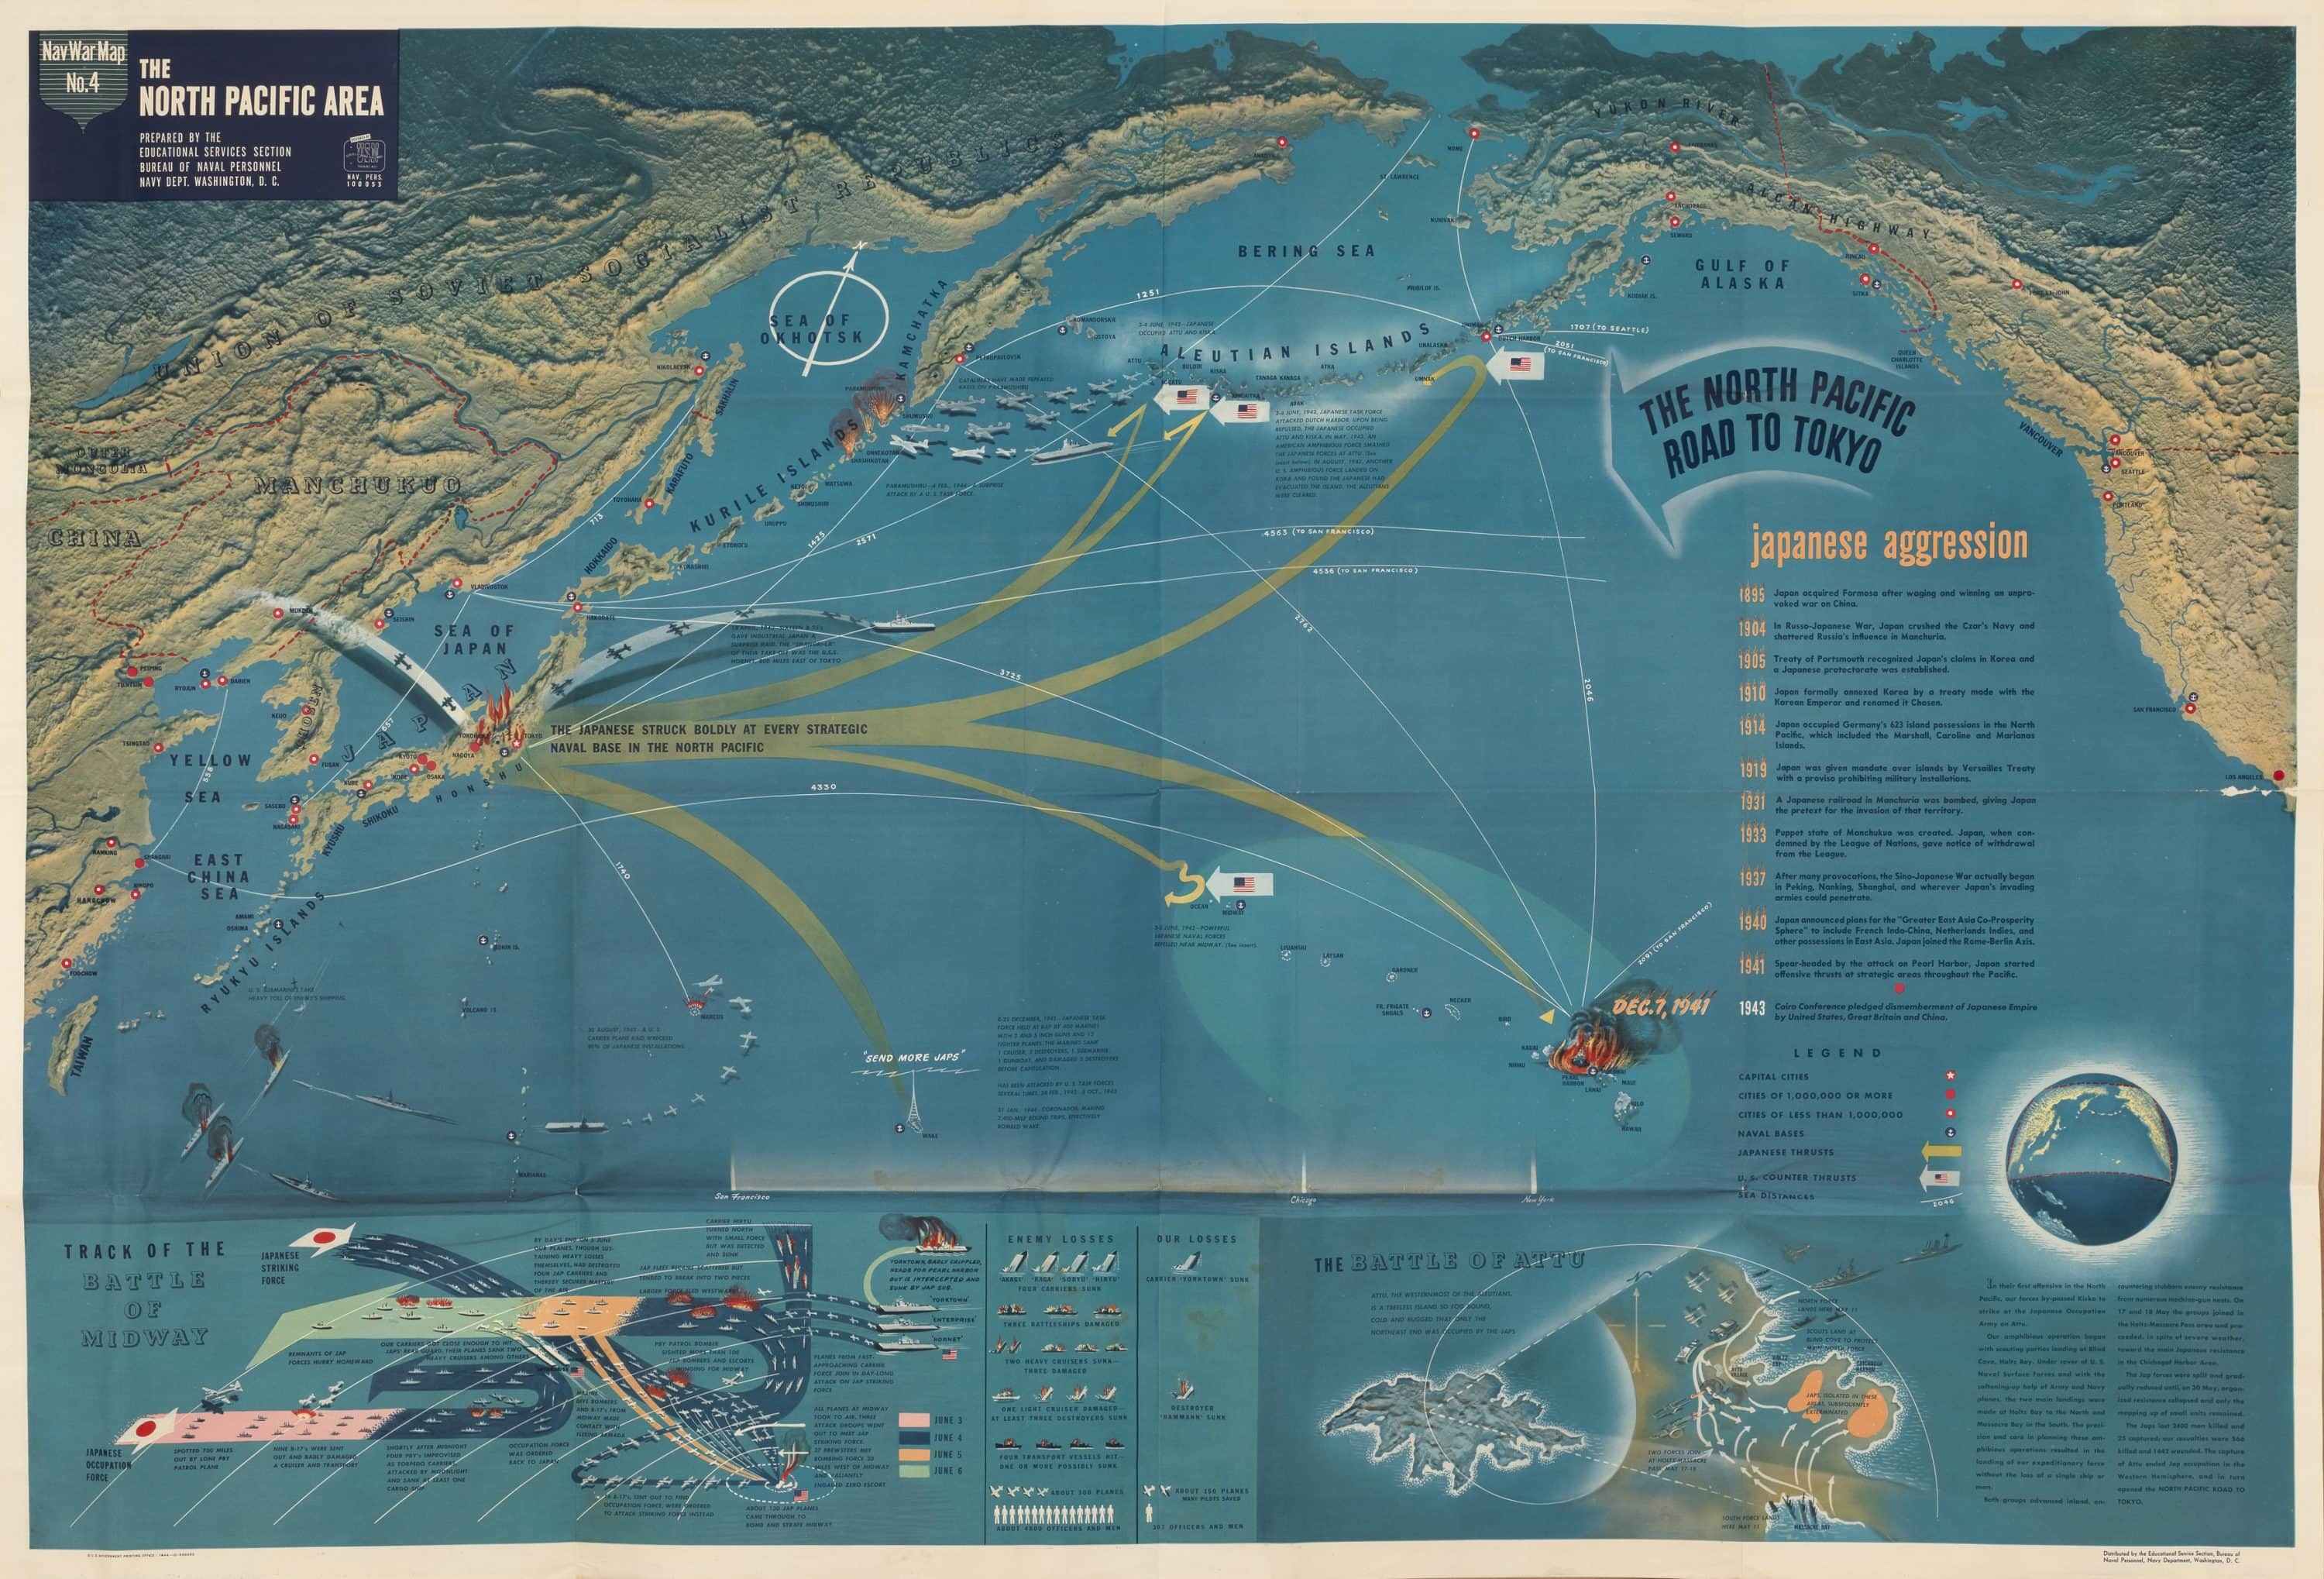 Striking U.S. Navy map of the North Pacific in WWII - Rare & Antique ...